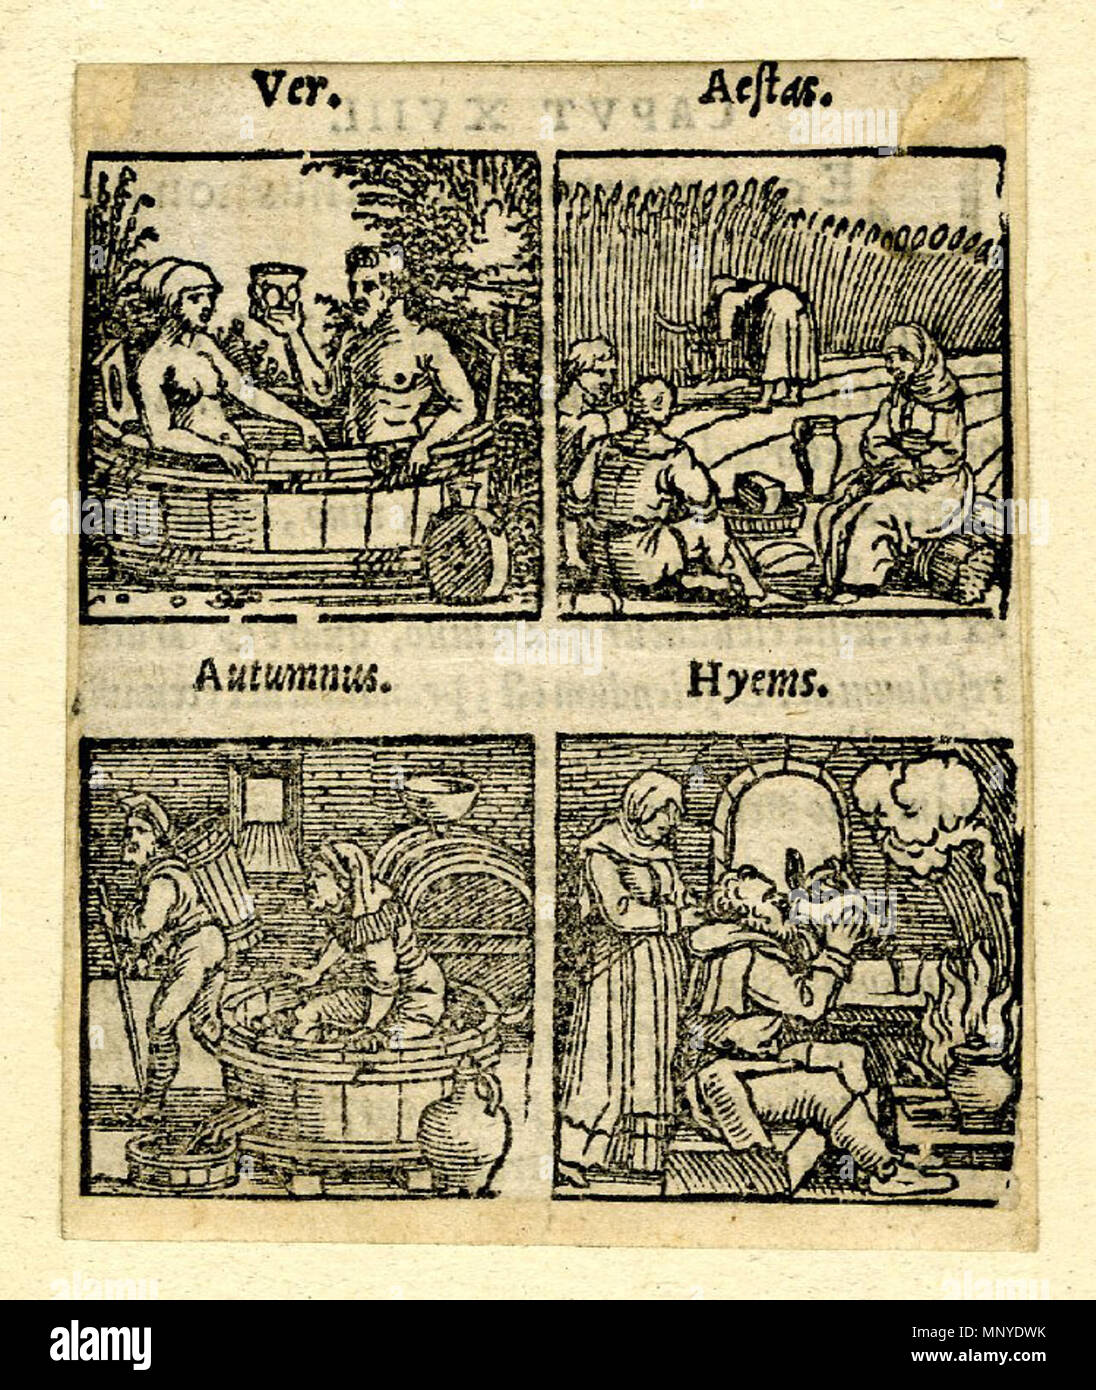 . English: Printed in two rows on the same sheet with the Latin titles above each woodcut in italics. Spring (Pauli 1214): a man and a woman sitting in a large wooden bath in the open air. Summer (1216): three peasant having lunch in a cornfield, another woman reaping. Autumn (Pauli 1217): A man treading grapes in a wine-press, another walking away with a wooden basket. Winter (Pauli 1211): A man sitting in front of a fire, drinking from a jug, a woman standing behind him. Illustration to Johannes Curio and Jakob Crell, 'De conservanda bona valetudine...', Frankfurt: Chr. Egenolph, 1553. Woodc Stock Photo